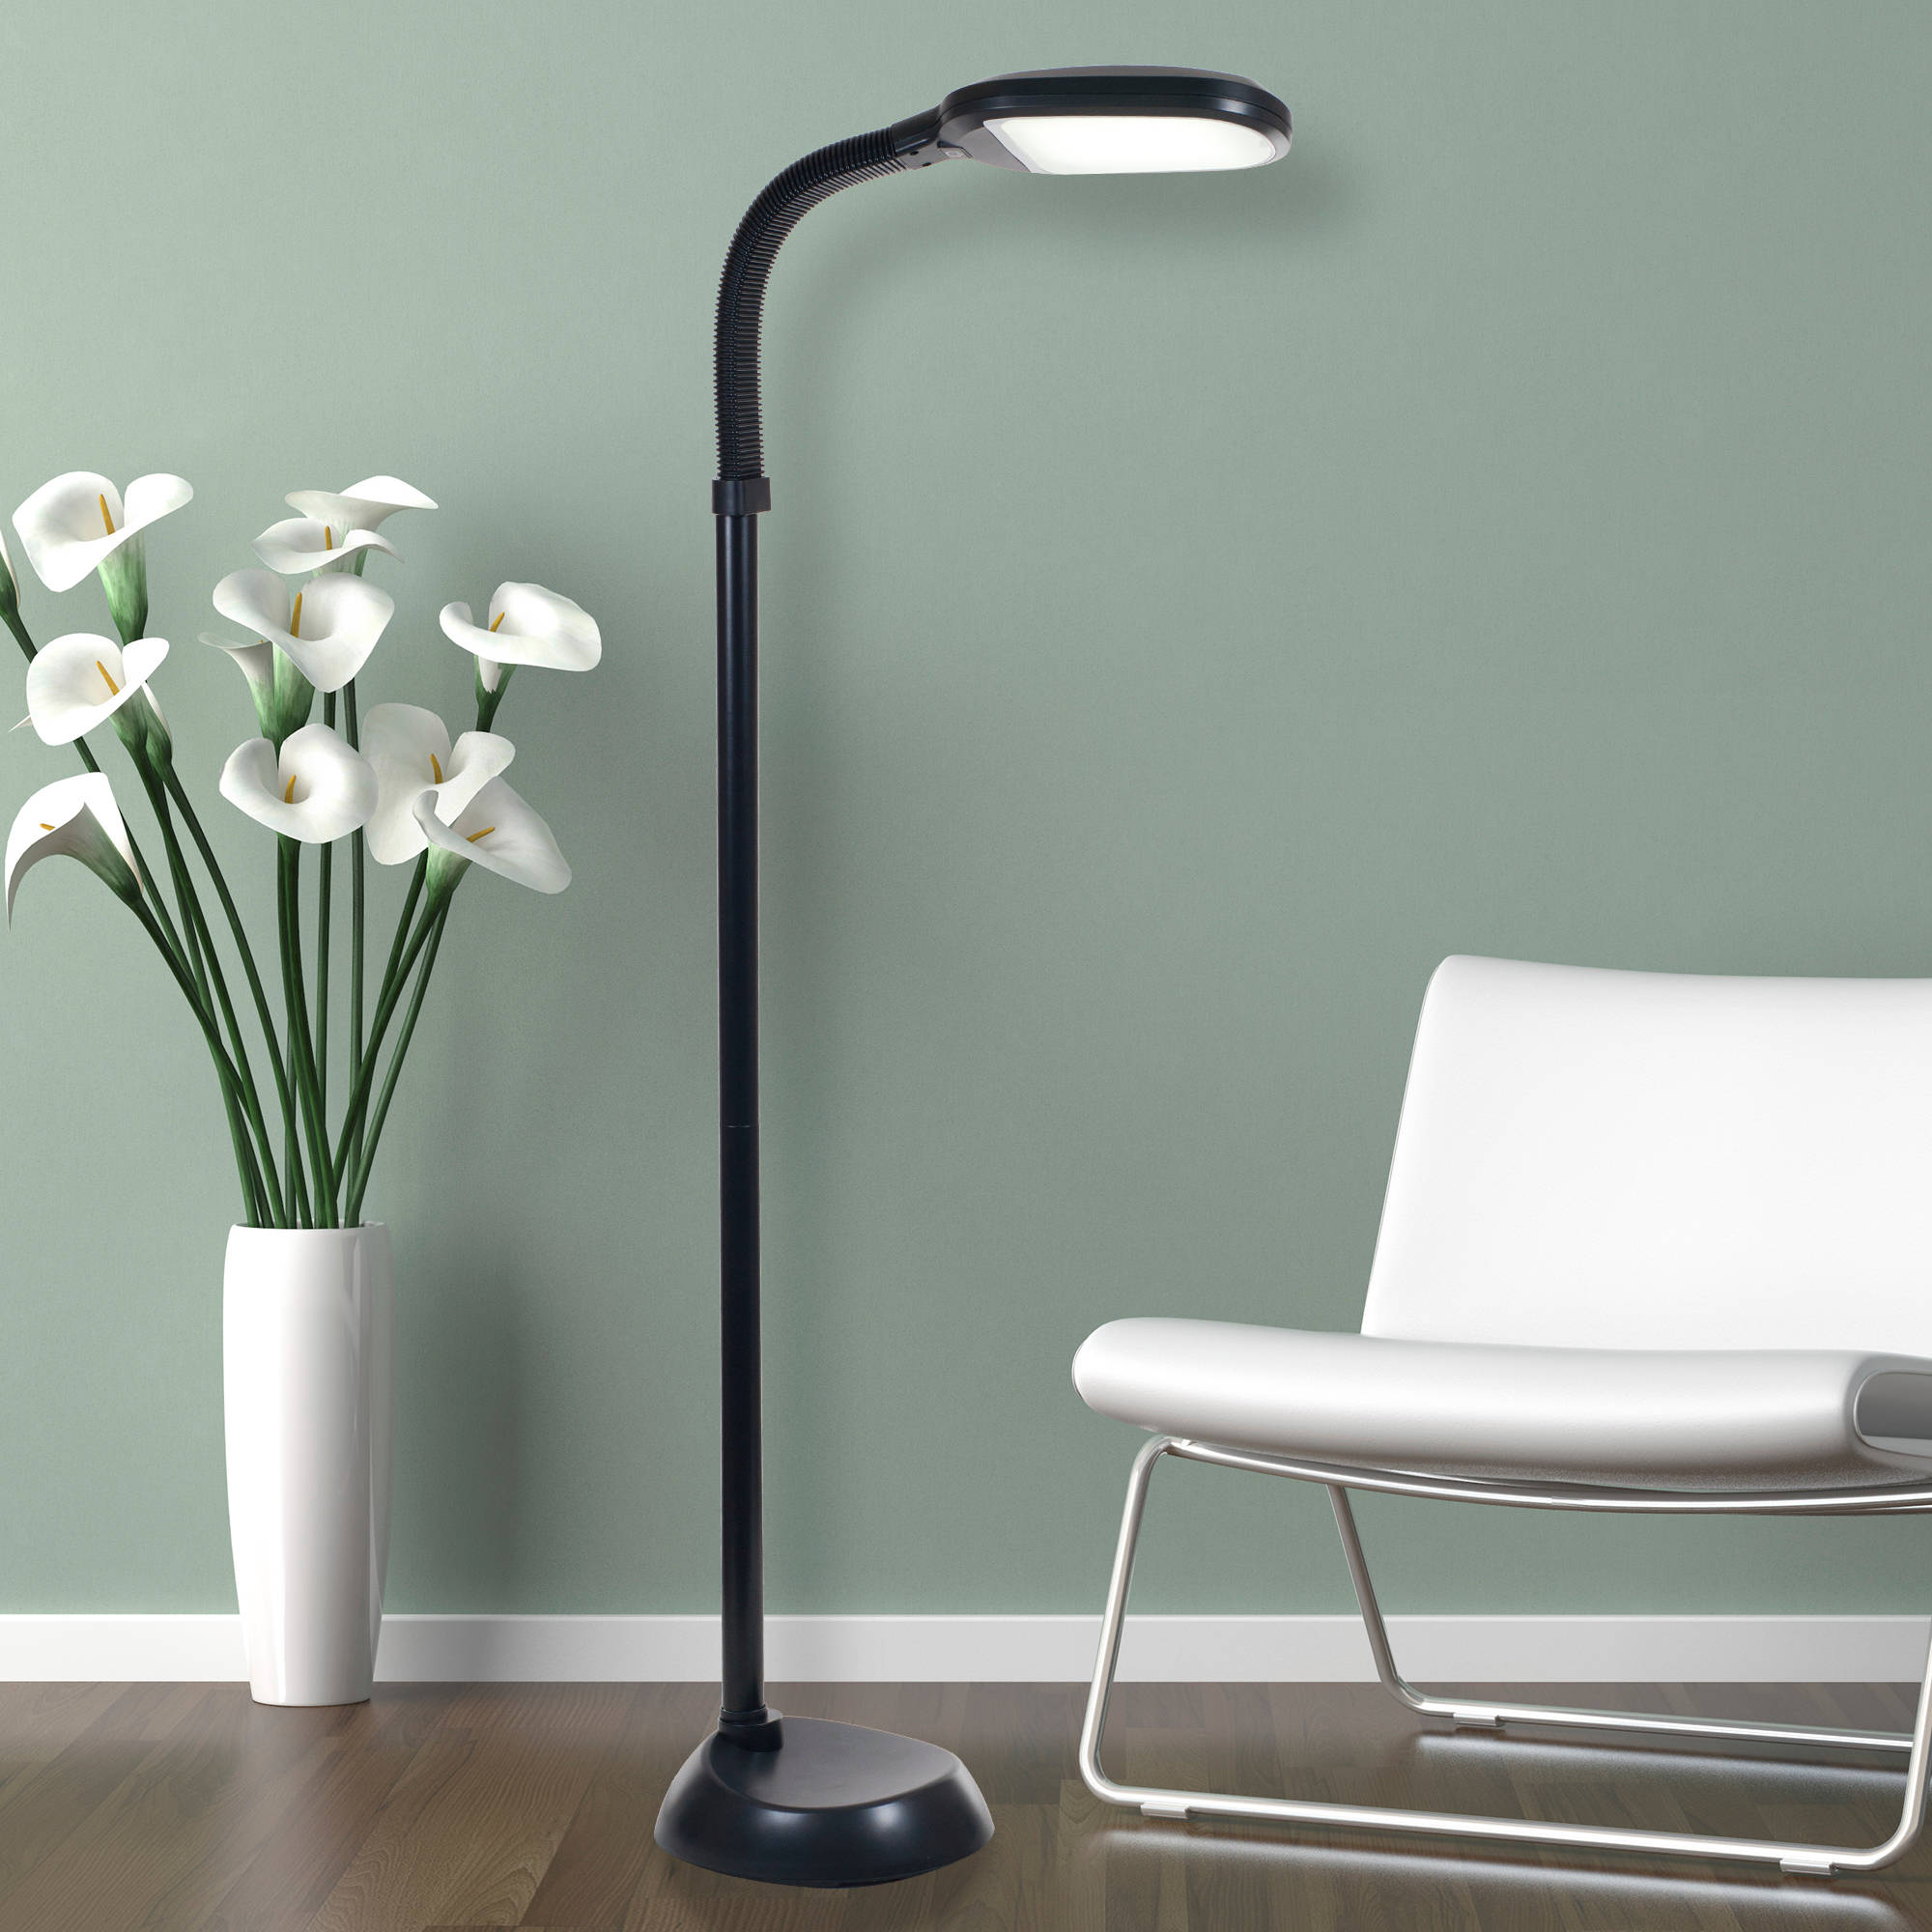 Lavish home led sunlight floor lamp with dimmer switch walmart mozeypictures